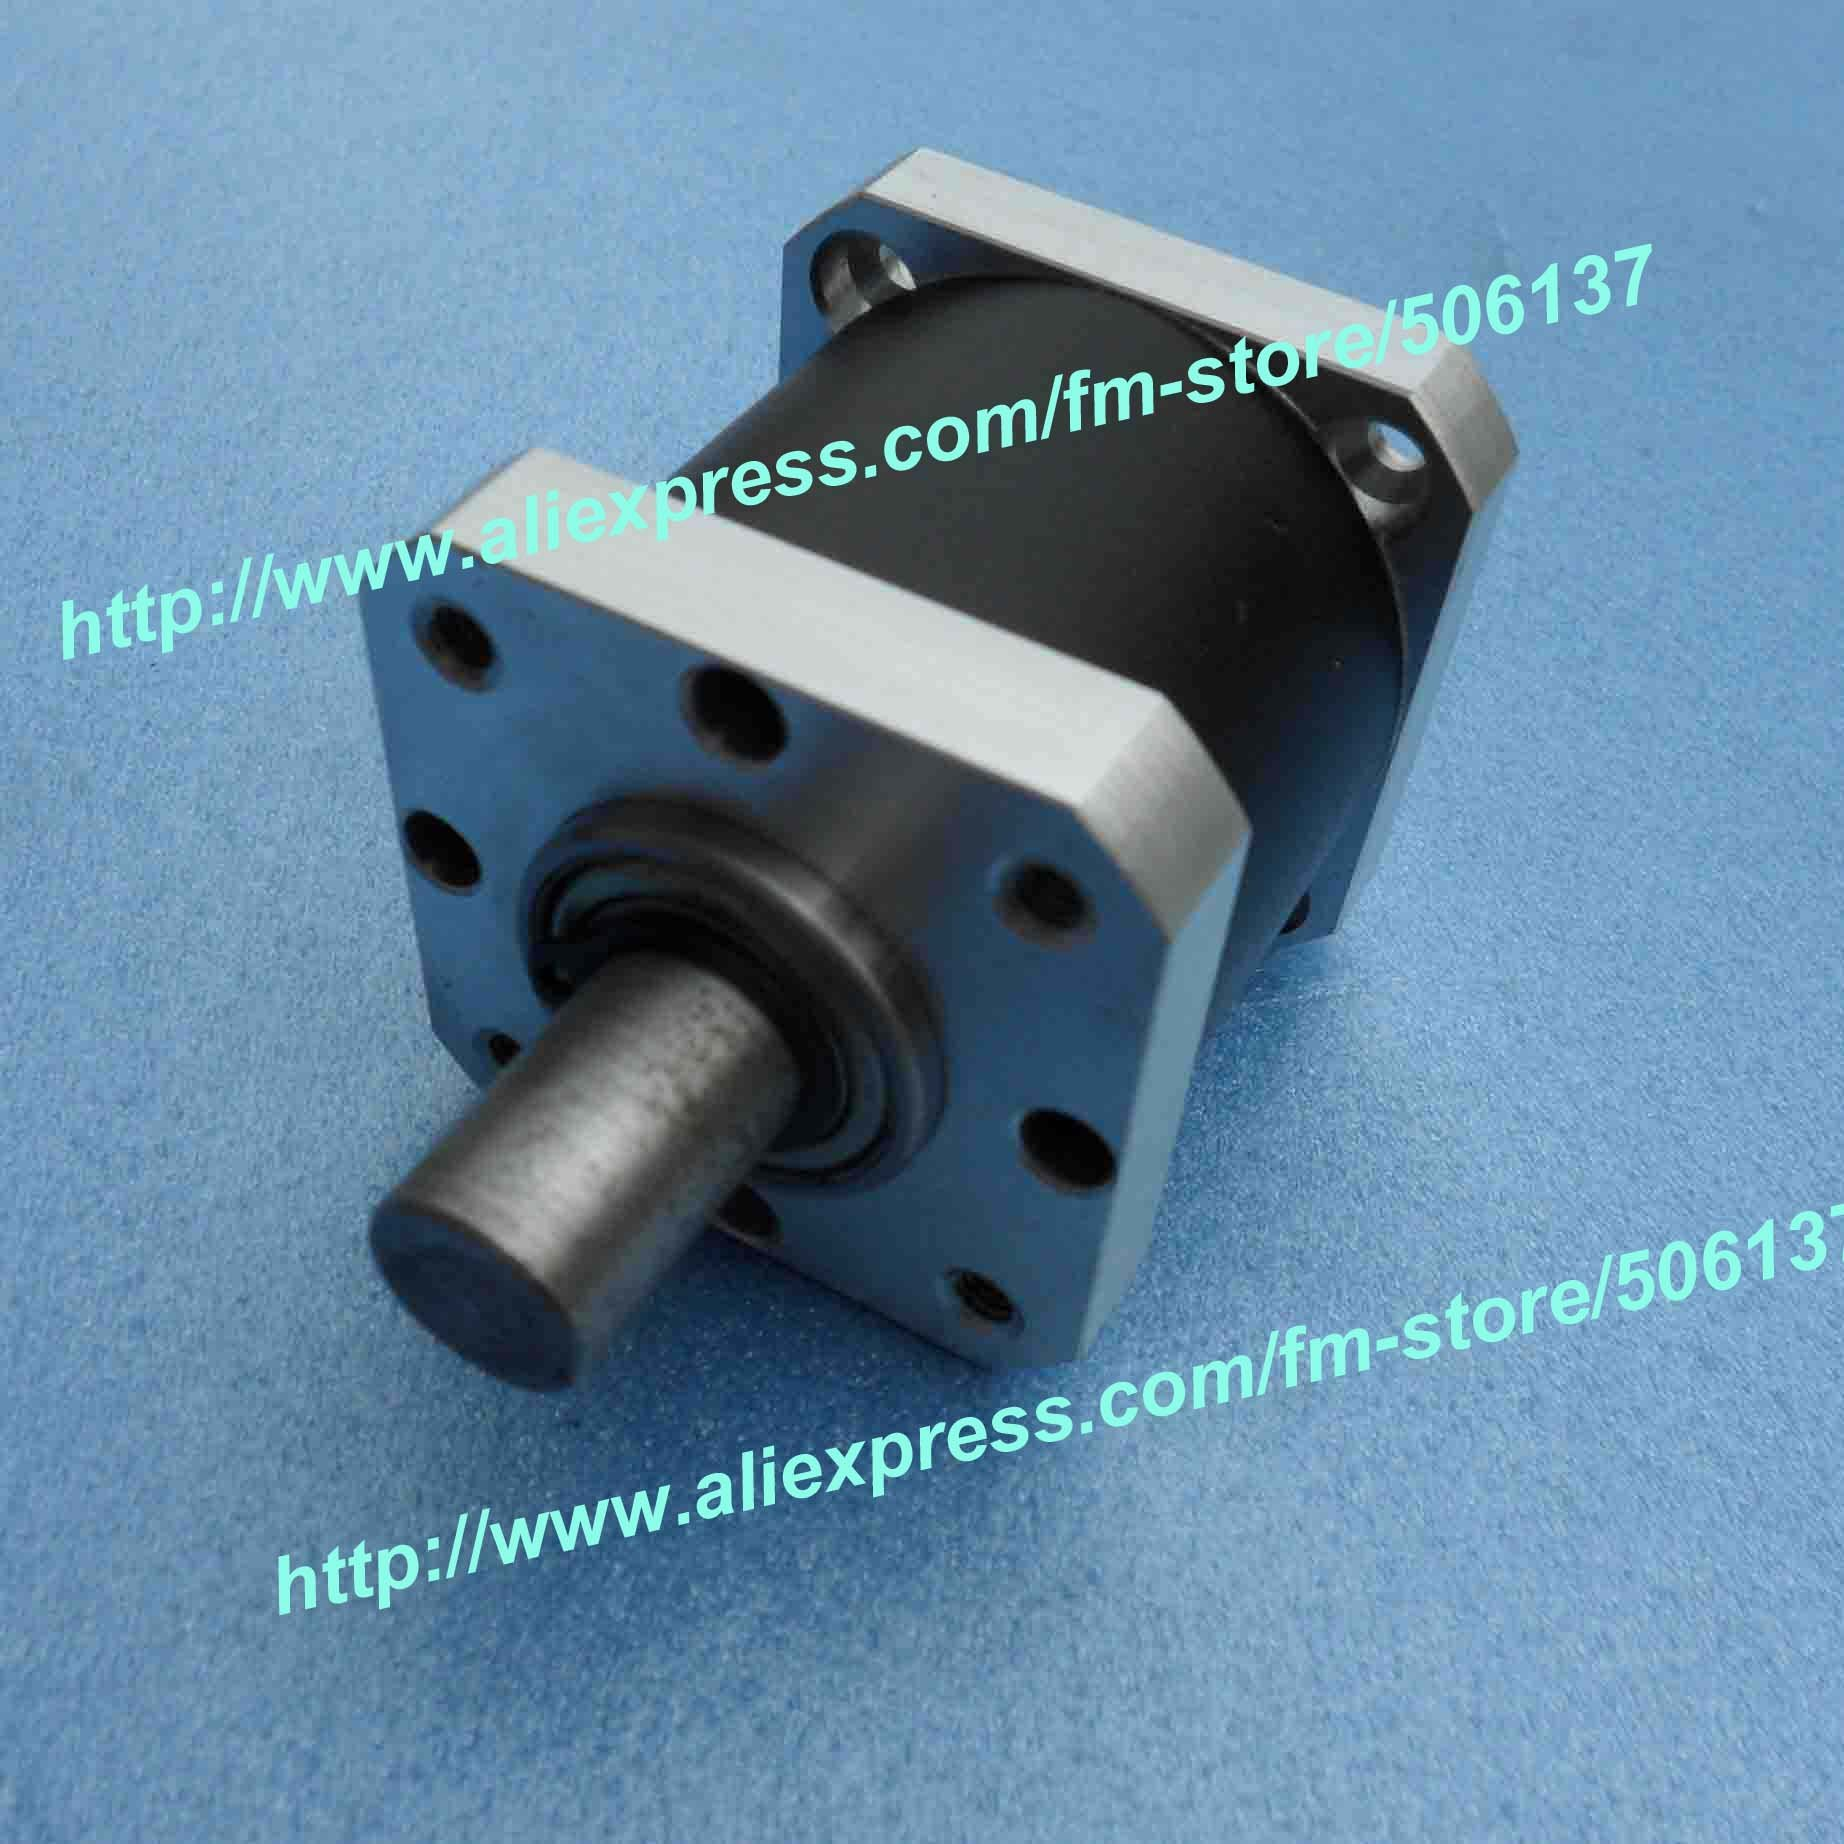 60mm Micro Planetary Speed Reducer , GP60-1 planetary gearbox,343KG.cm high torque planetary gear box 42mm micro planetary speed reducer gp42 0 planetary gearbox